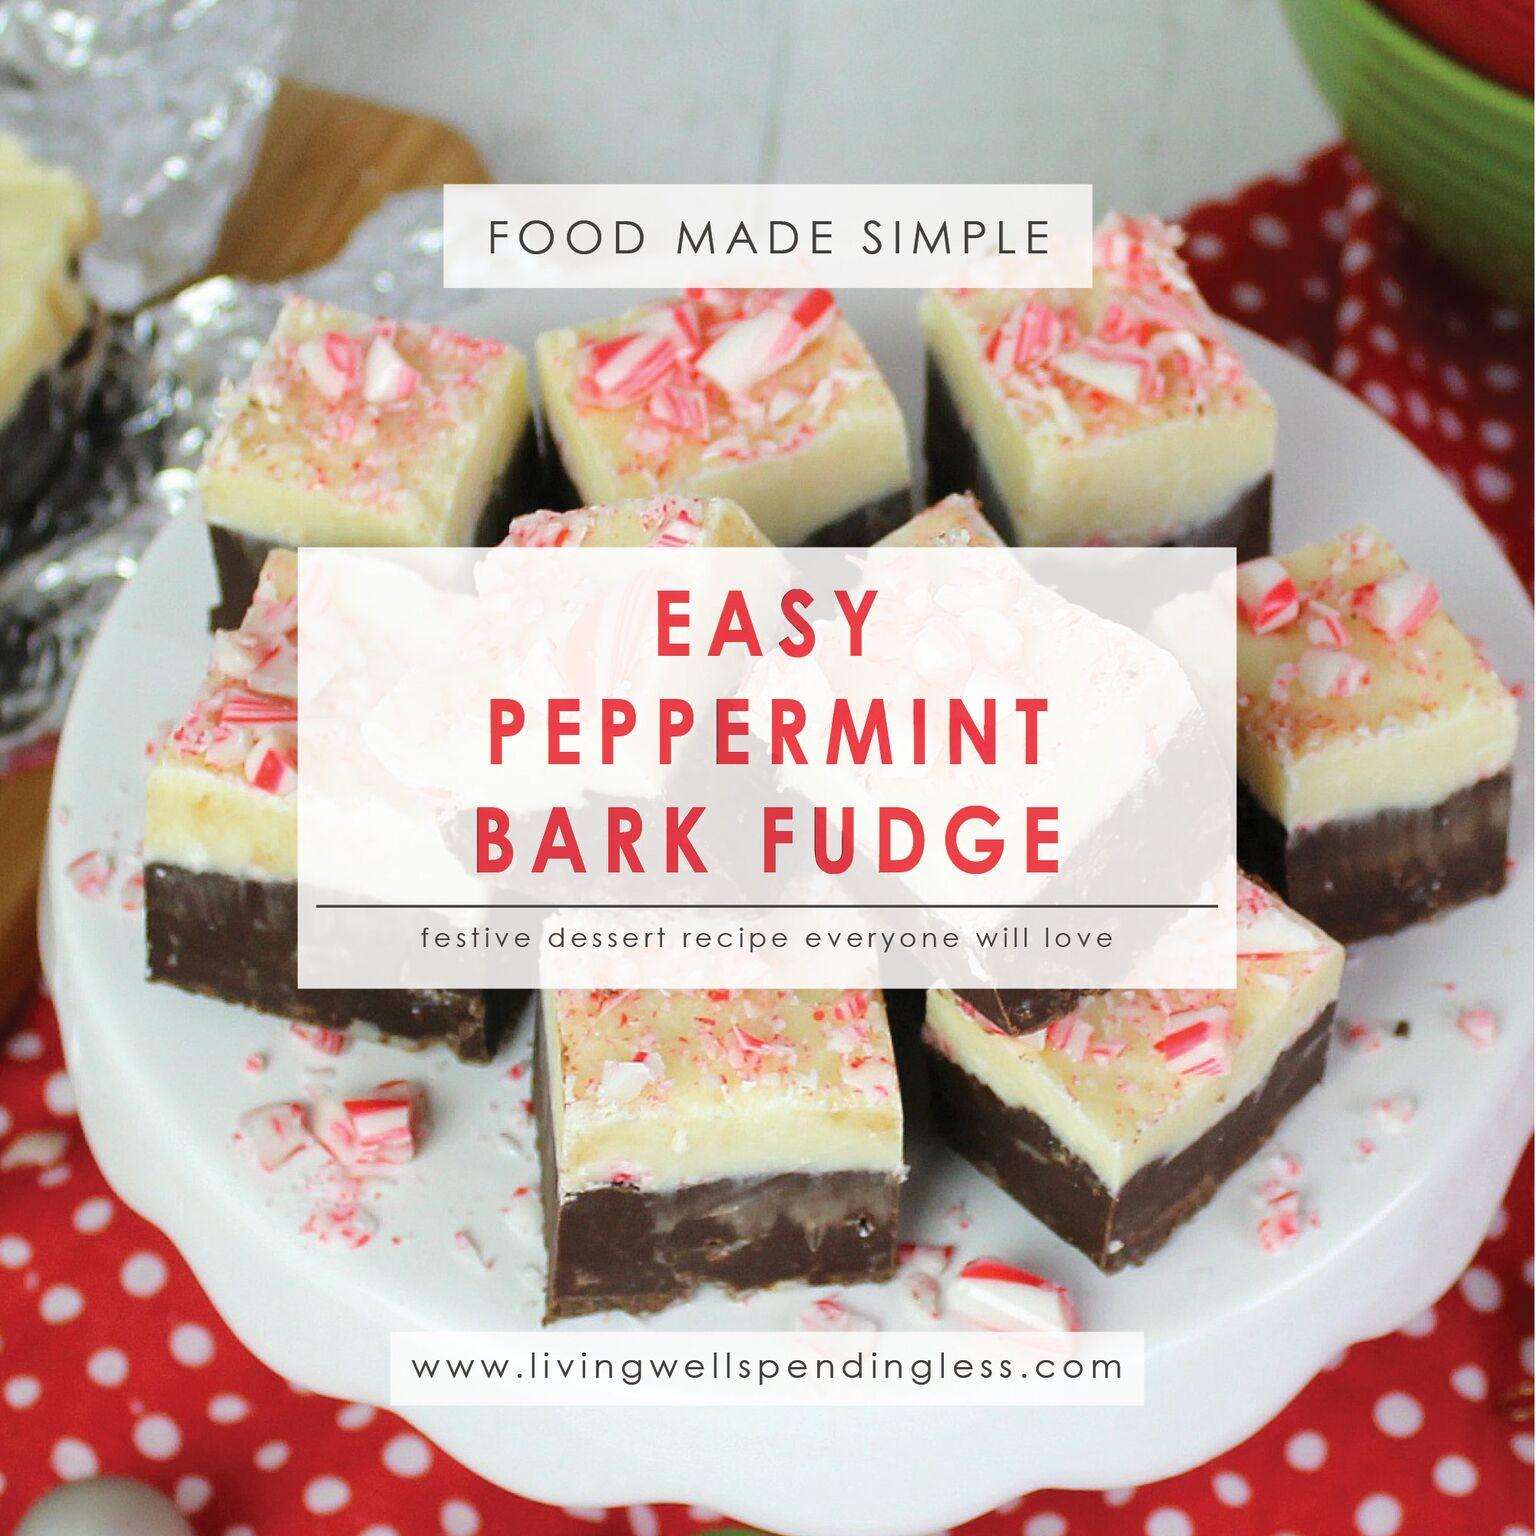 Create a festive dessert that everyone will love with this Easy Peppermint Bark Fudge recipe!